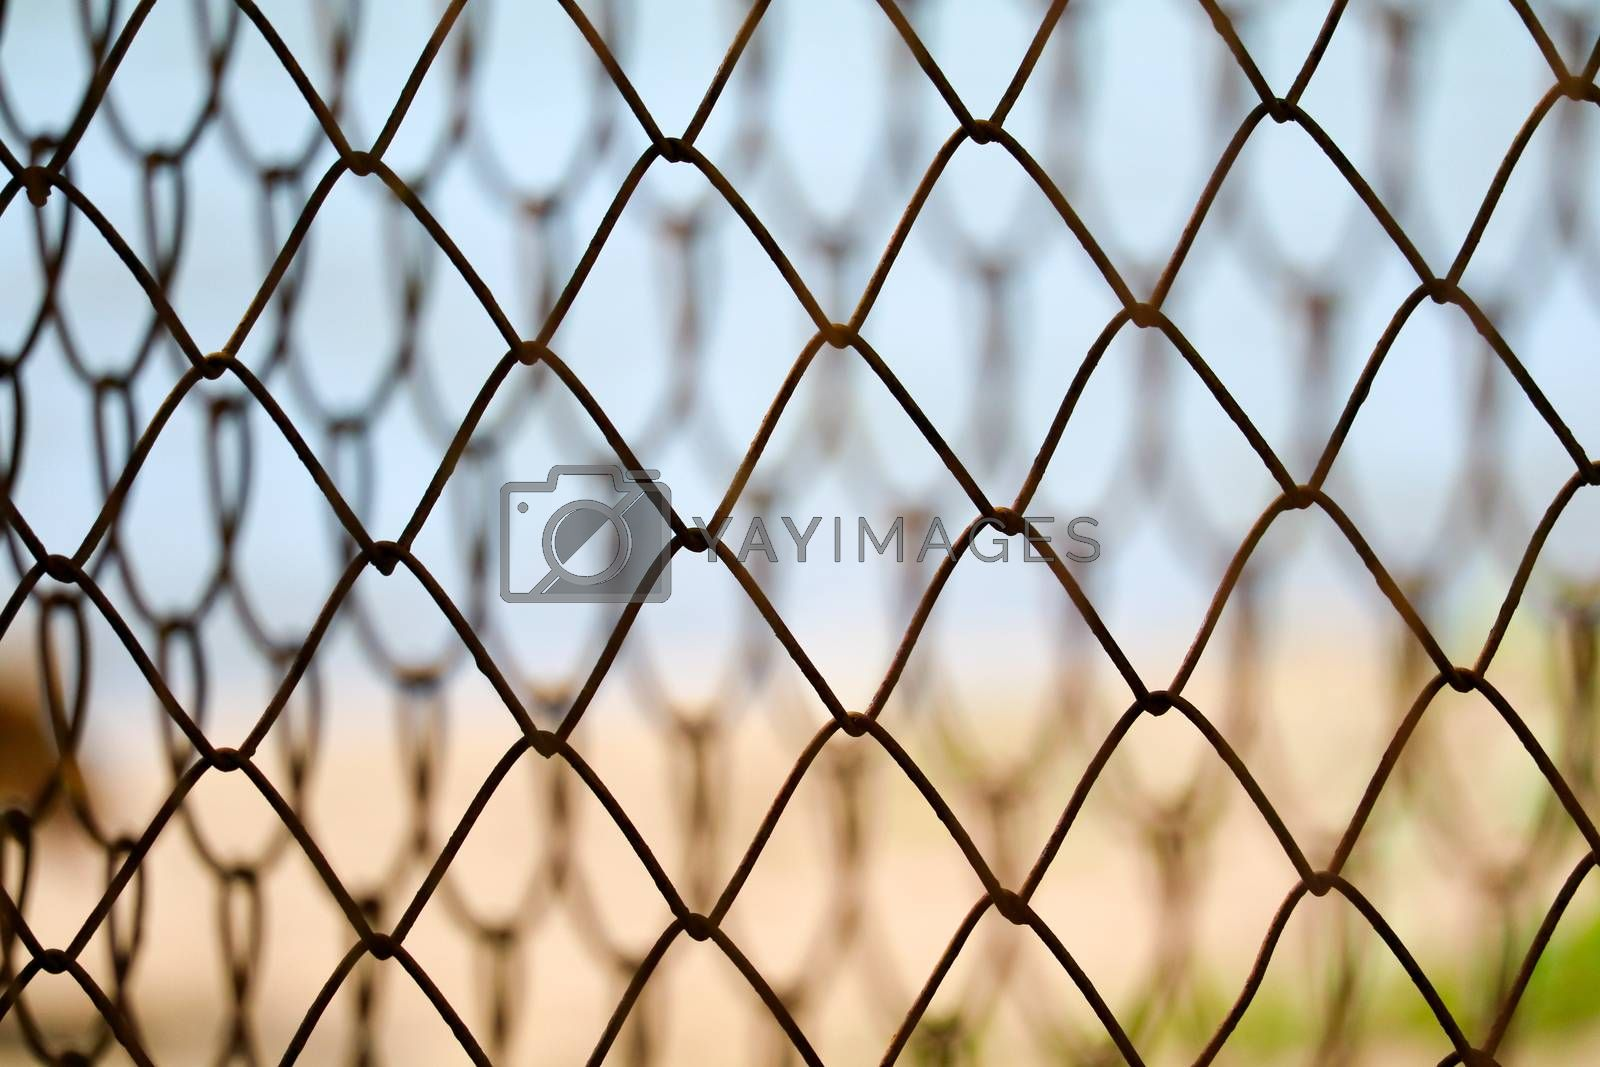 Steel wire fence to prevent dangerous areas along the beach and blur background